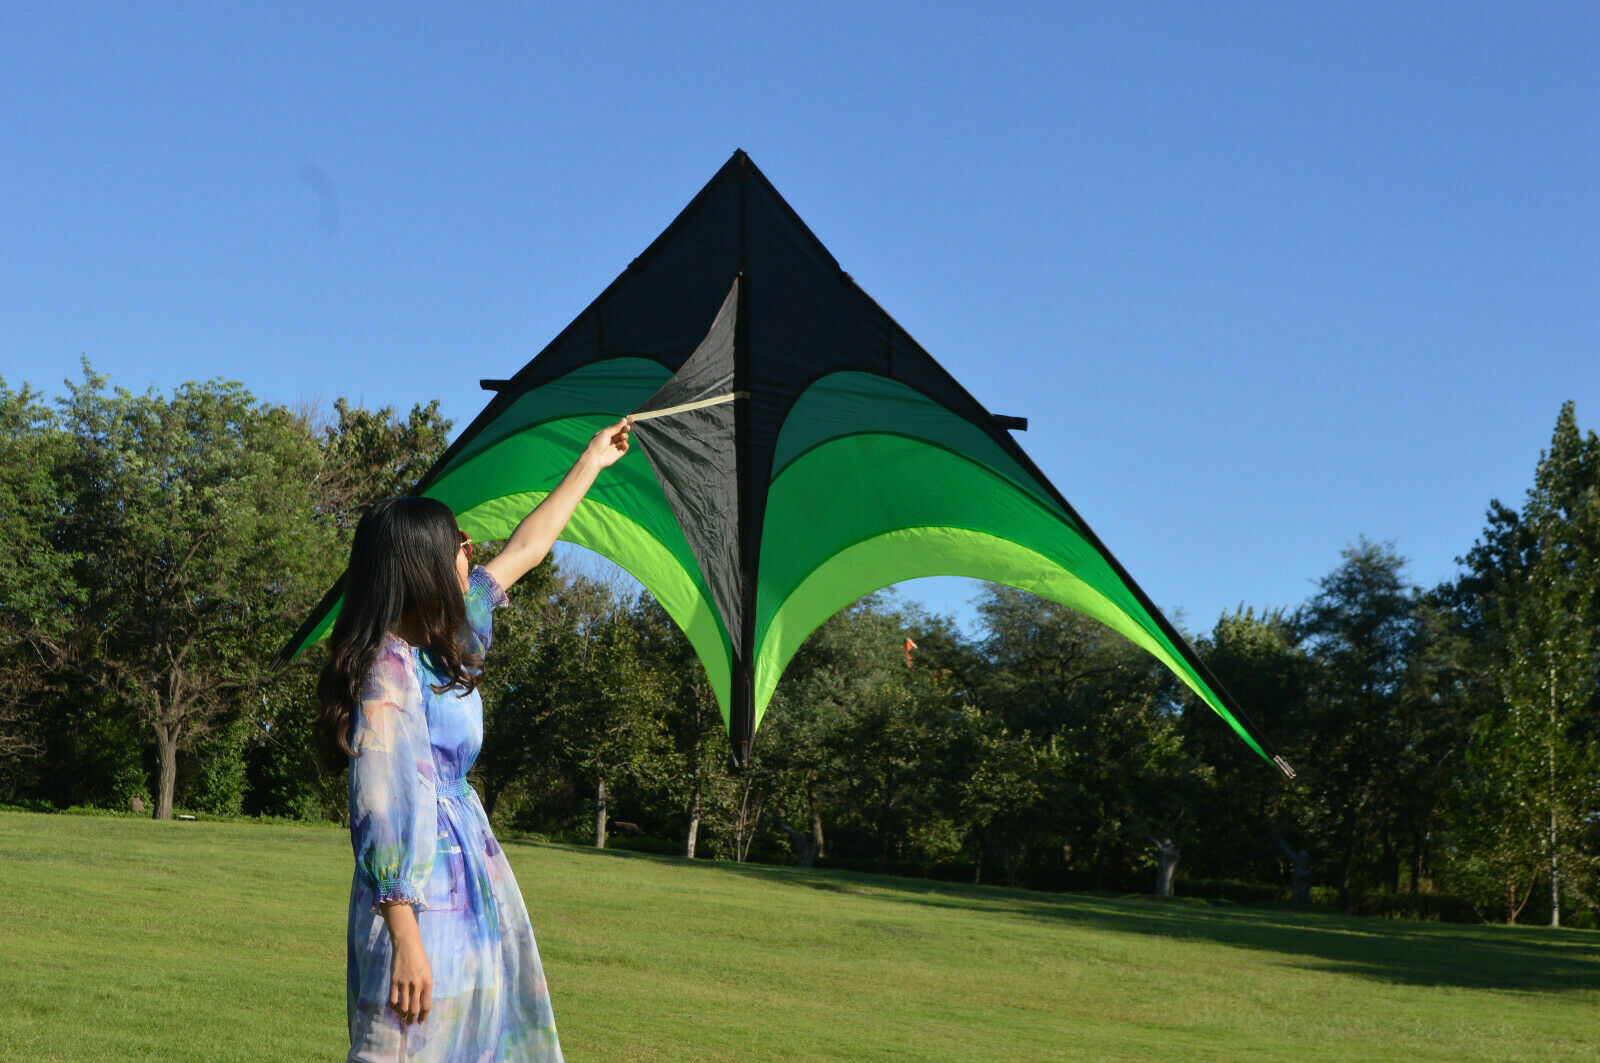 Large Delta Kite For Kids And Adults Single Line Easy Fly To